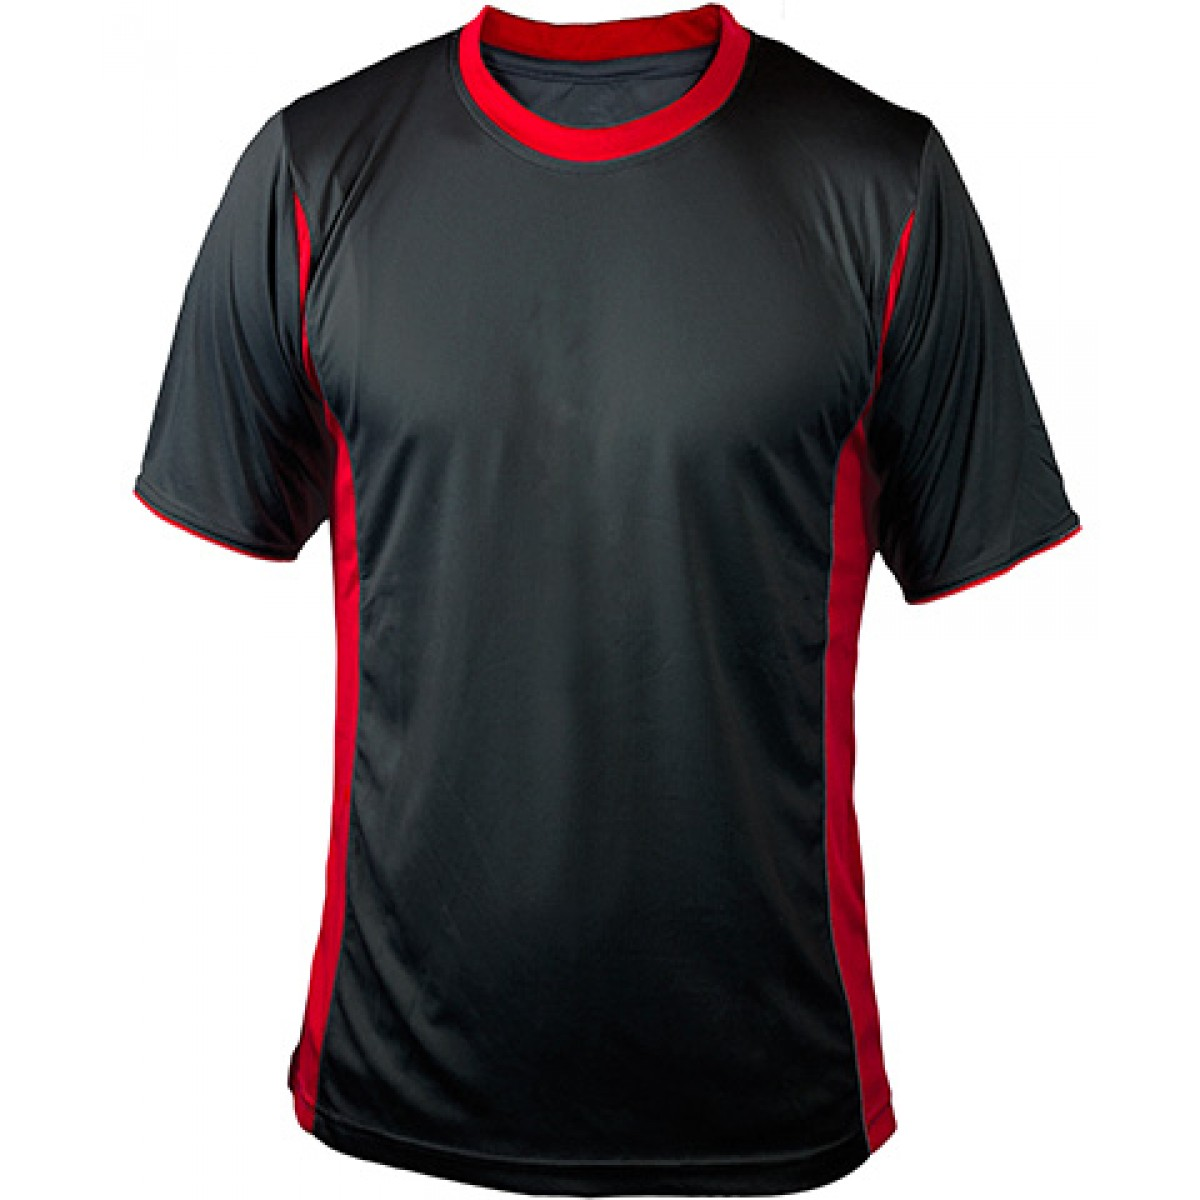 Black Short Sleeves Performance With Red Side Insert-Black-XL